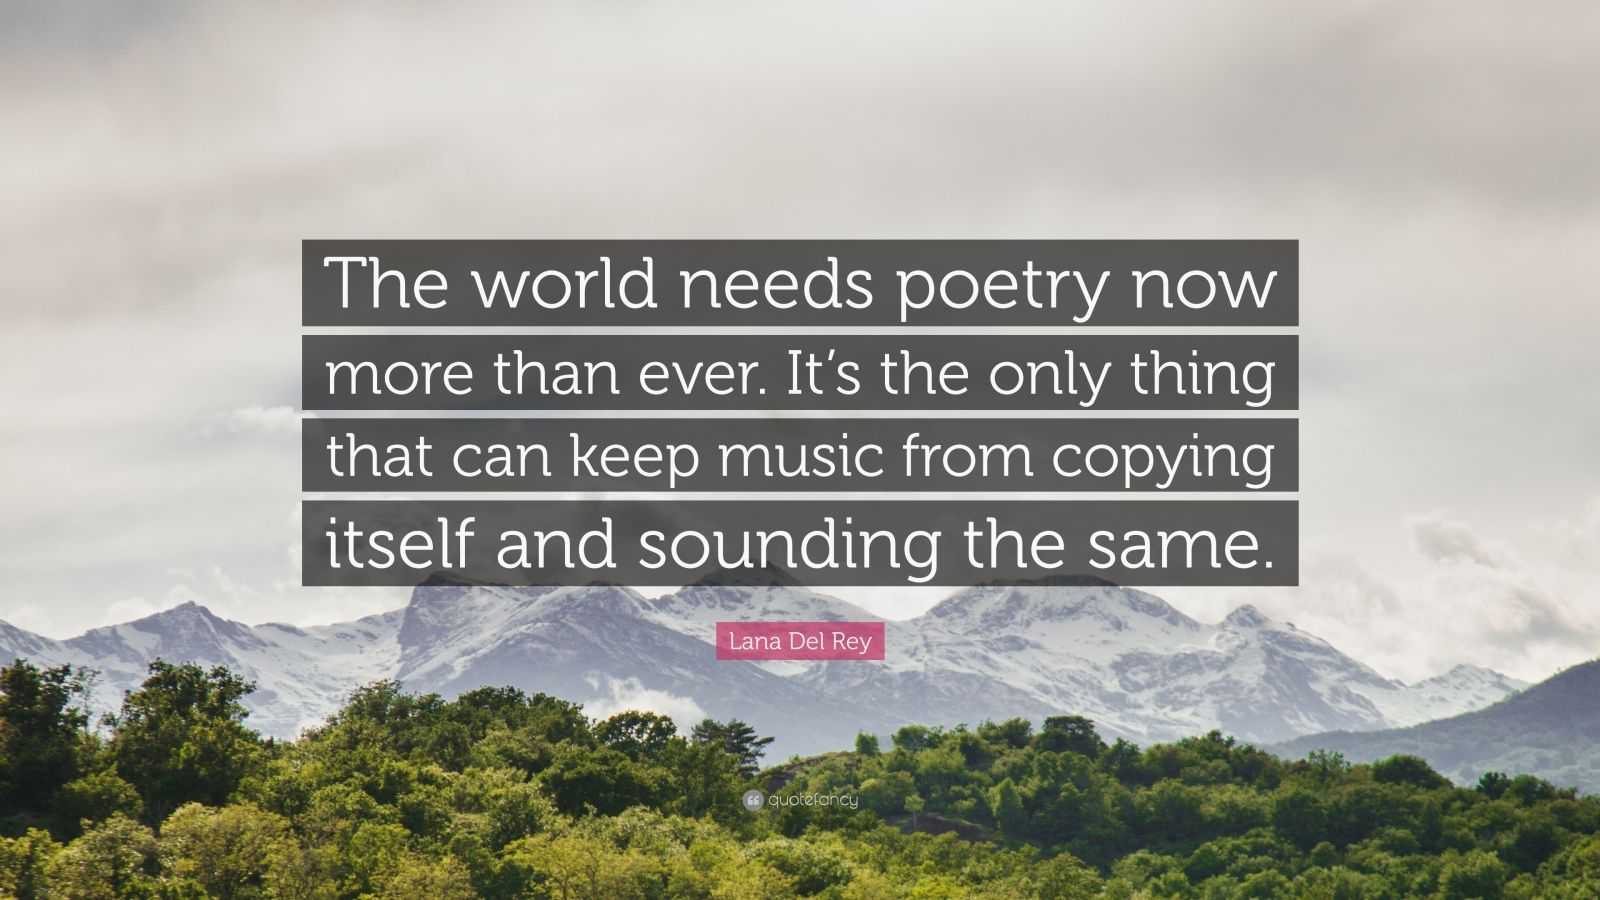 """Lana Del Rey Quote: """"The world needs poetry now more than ever. It's the only thing that can keep music from copying itself and sounding the same."""""""